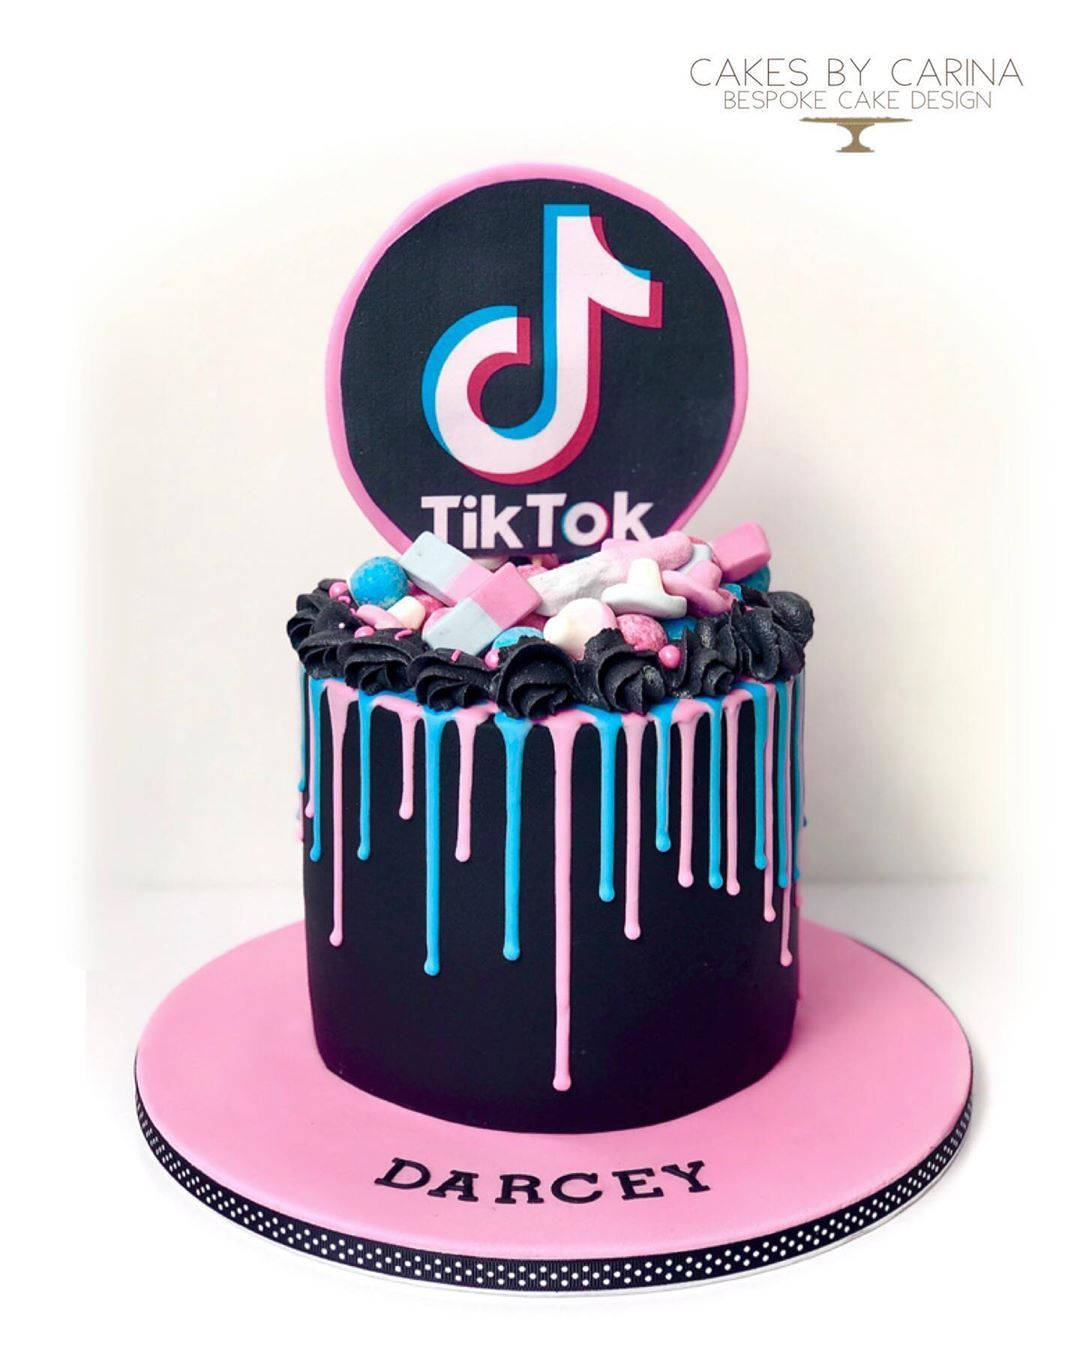 Cakes By Carina On Instagram A Surprise Tik Tok Cake For Our Little Social Media Fiend Darc Cool Birthday Cakes Unique Birthday Cakes Cake Designs Birthday